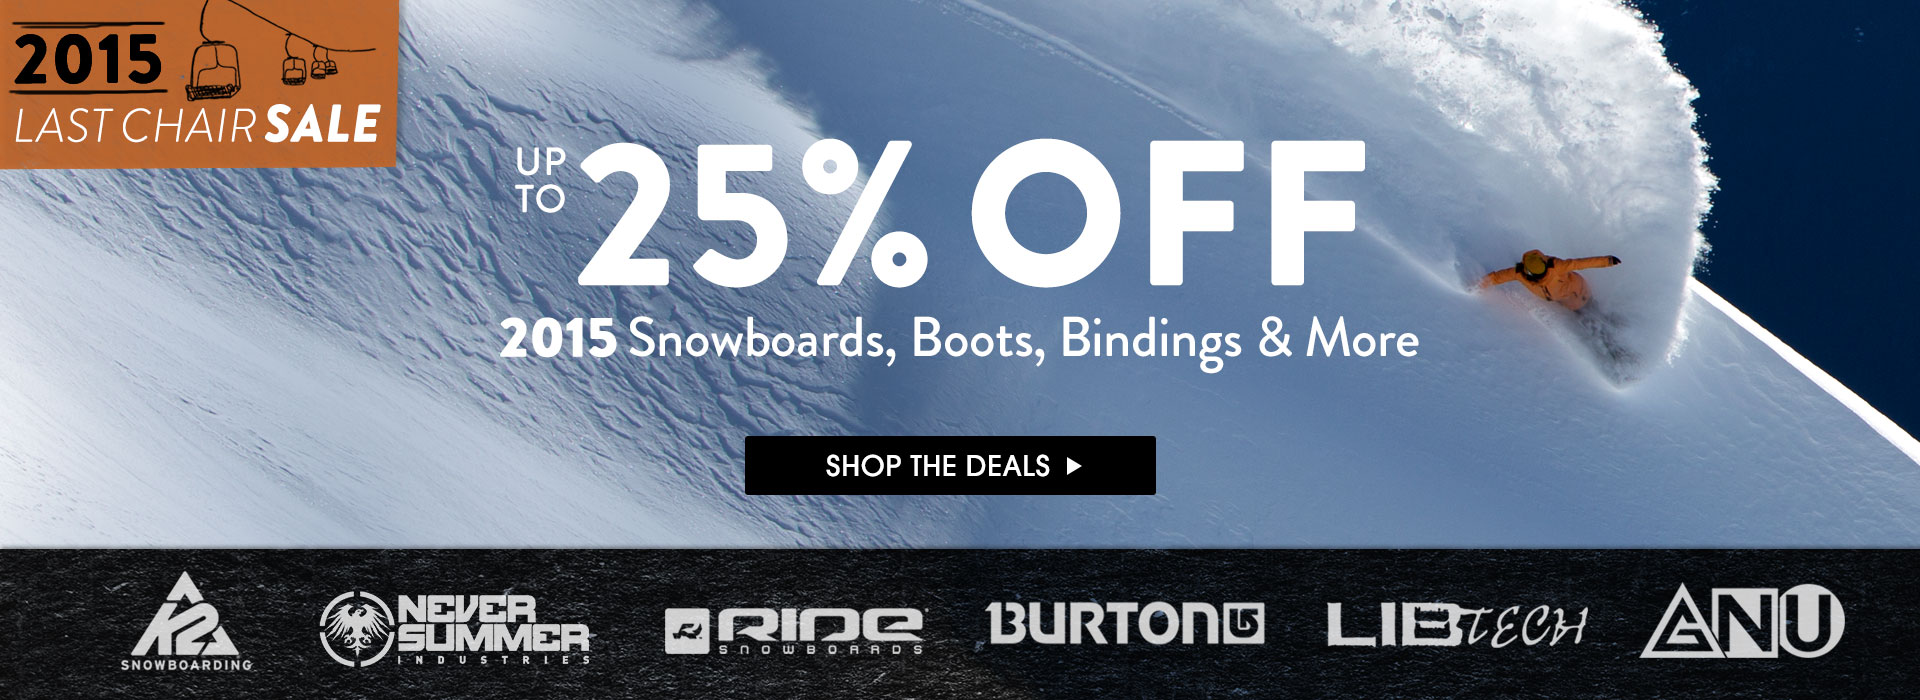 Last Chair Sale. Up To 25% Off 2015 Snowboard Gear. Shop Now.